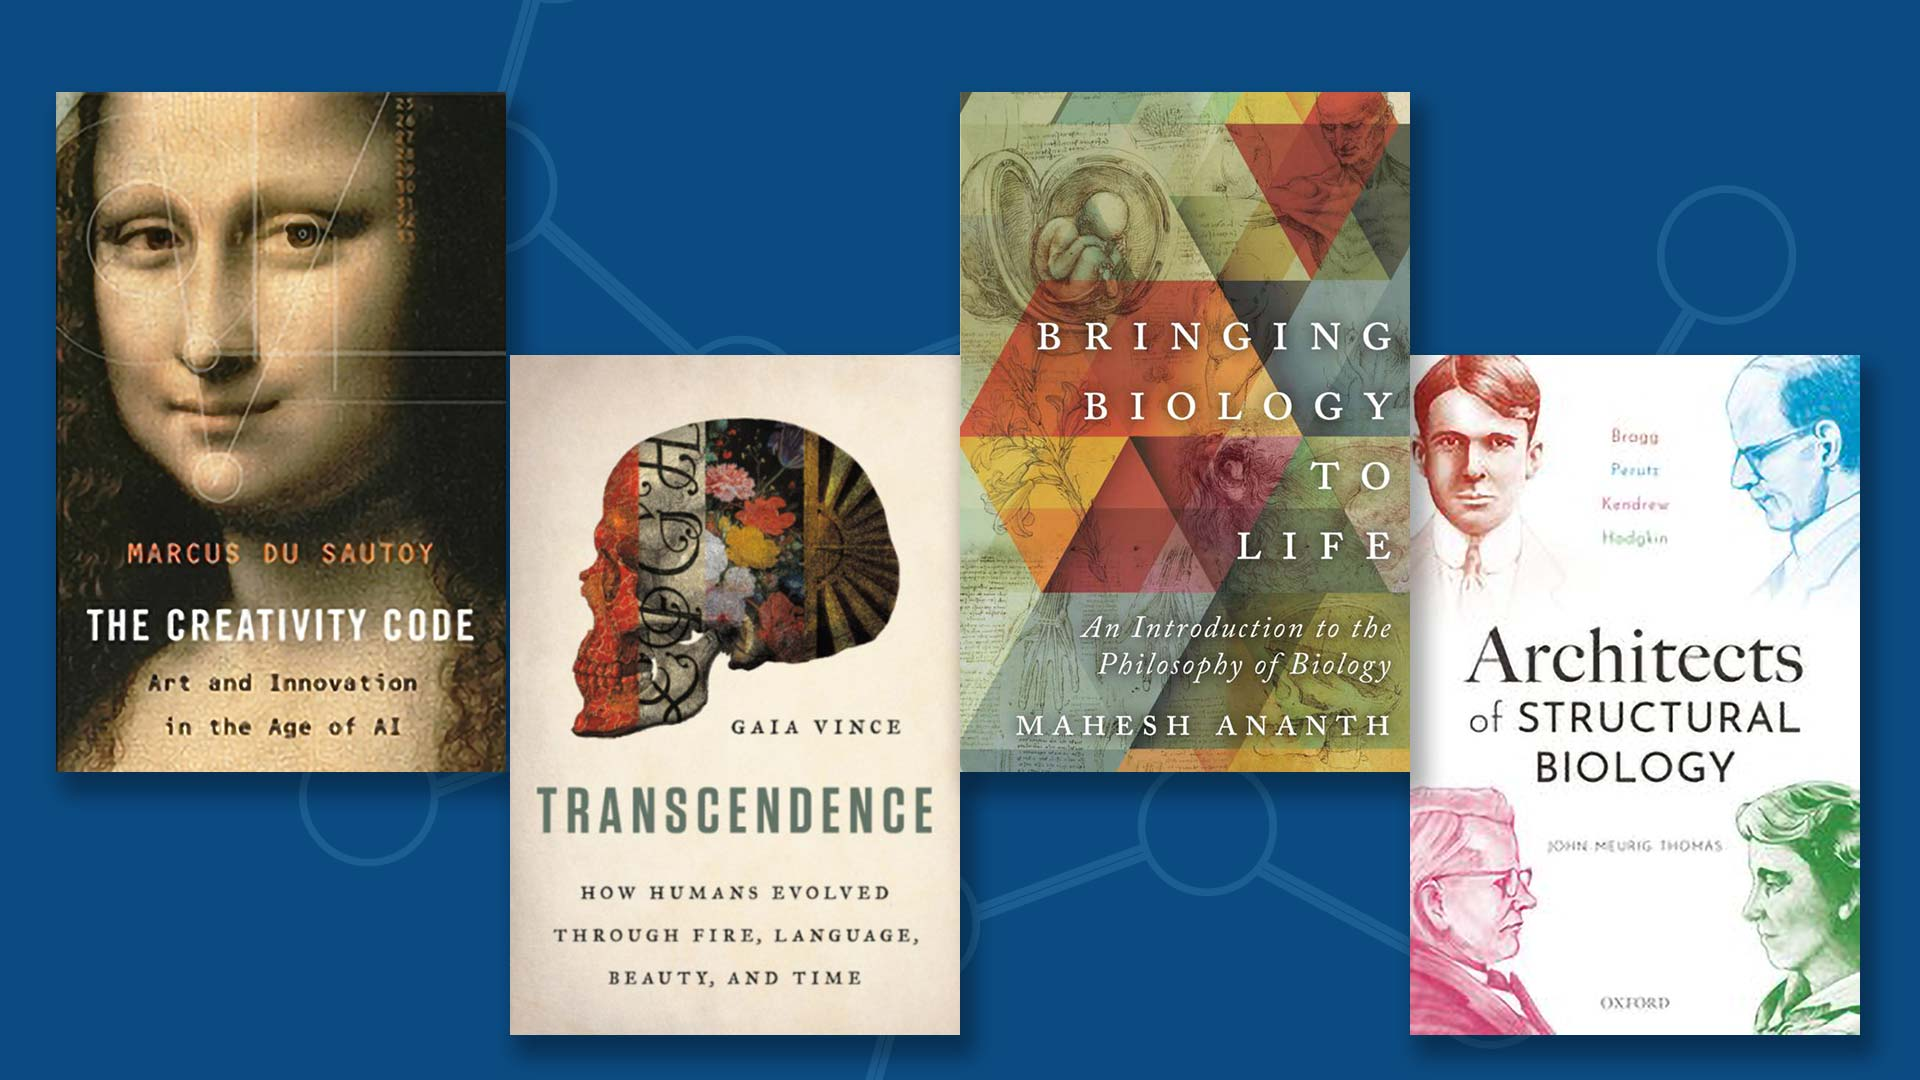 image of the covers of 4 new books from the CSHL Library